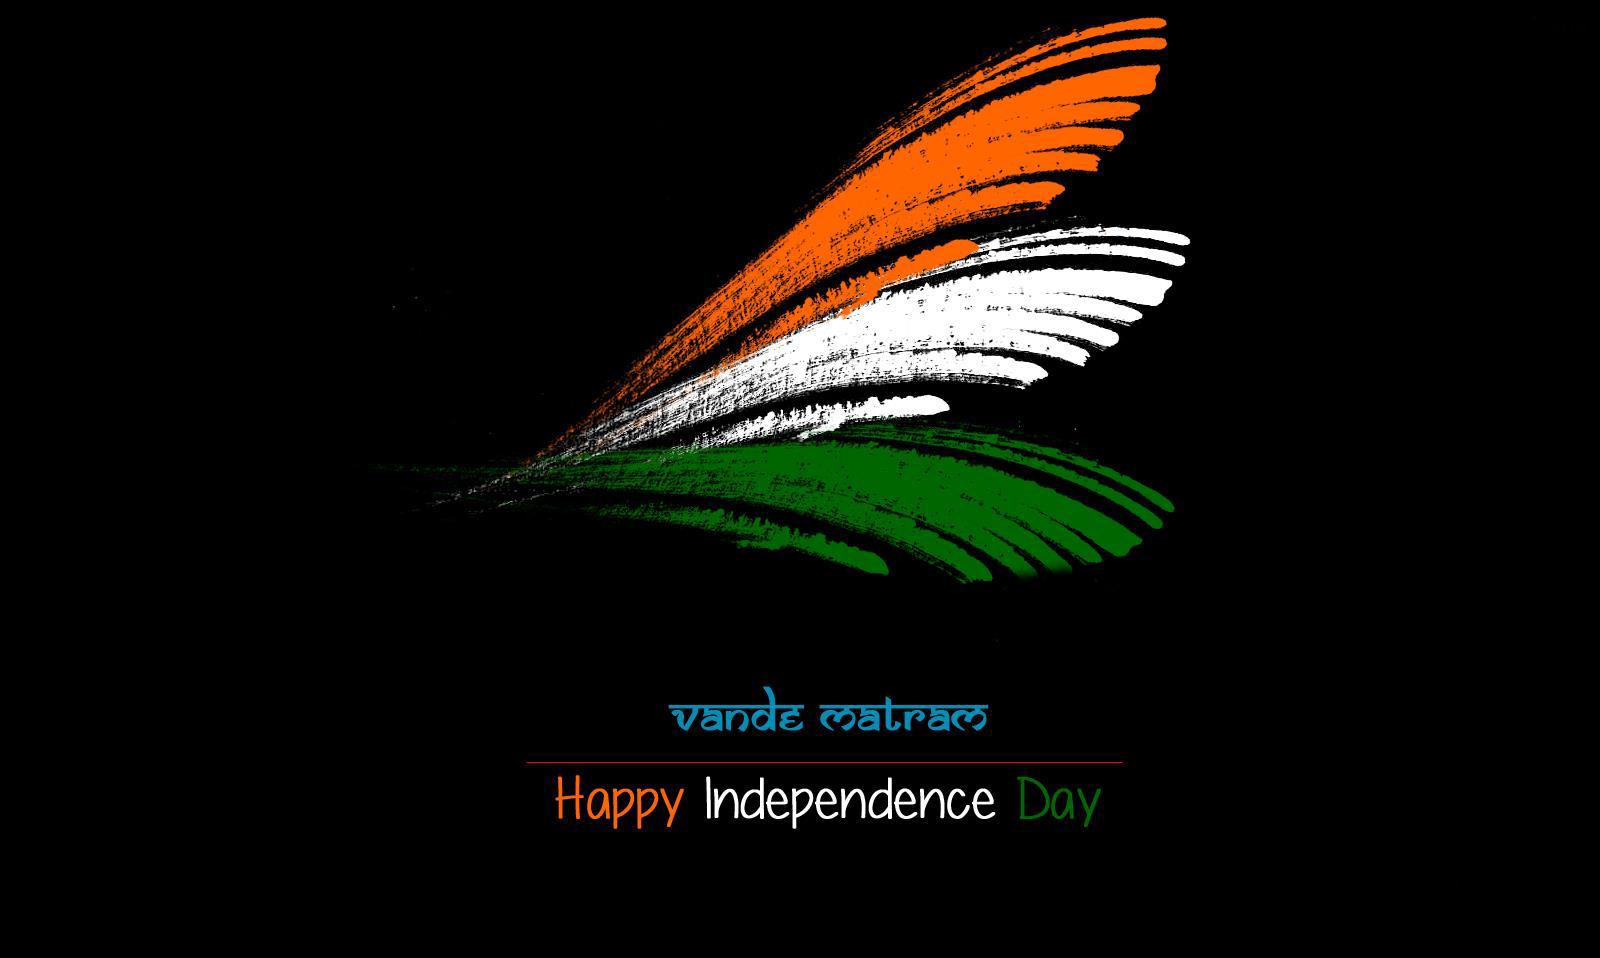 Independence Day Wallpaper   15 August 2018 Independence Day 1600x958